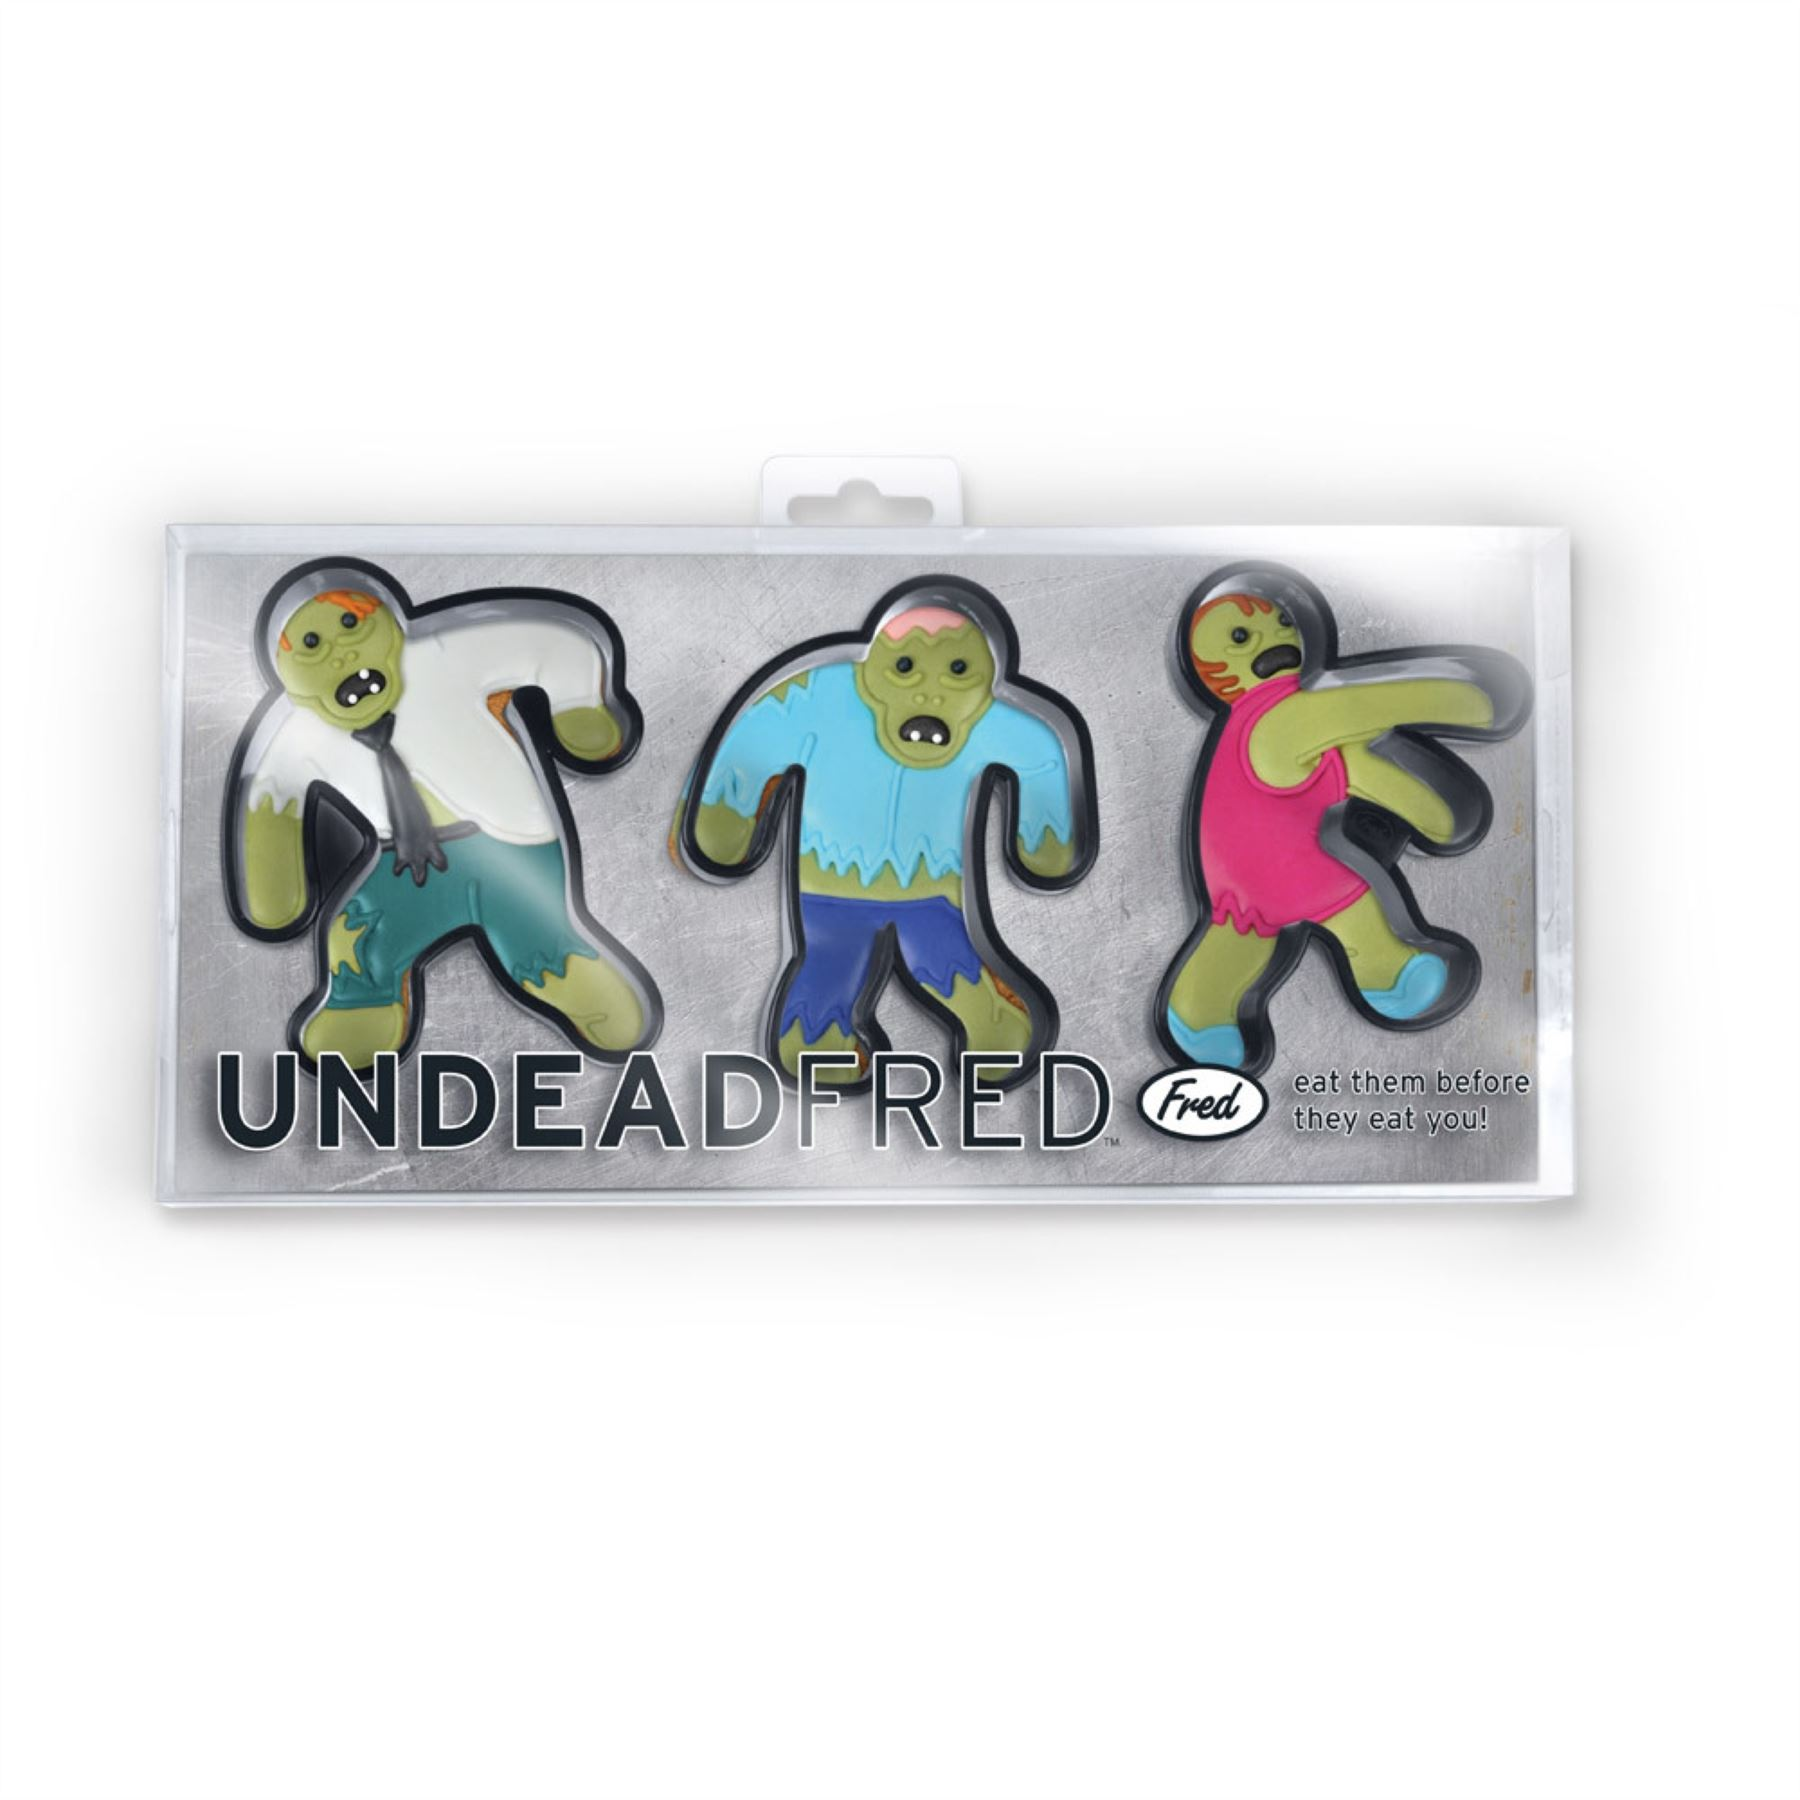 Fred-Undead-Baking-Dead-Zombie-Design-Gingerbread-Cookie-Cutters